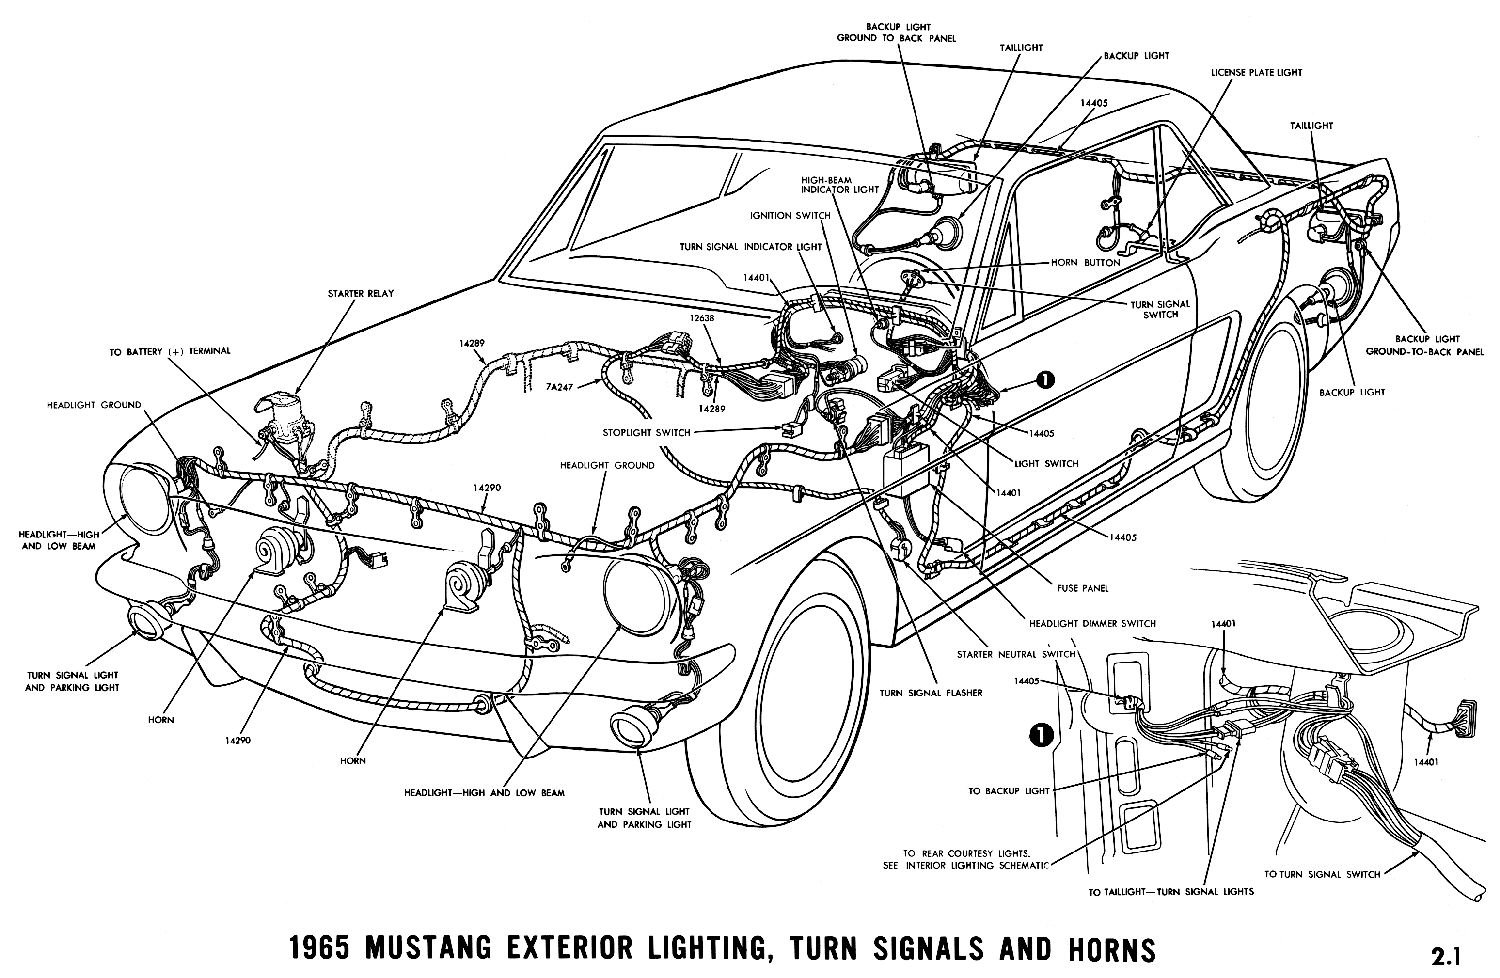 1968 Mustang Fuse Box Diagram. Wiring. Wiring Diagram Images